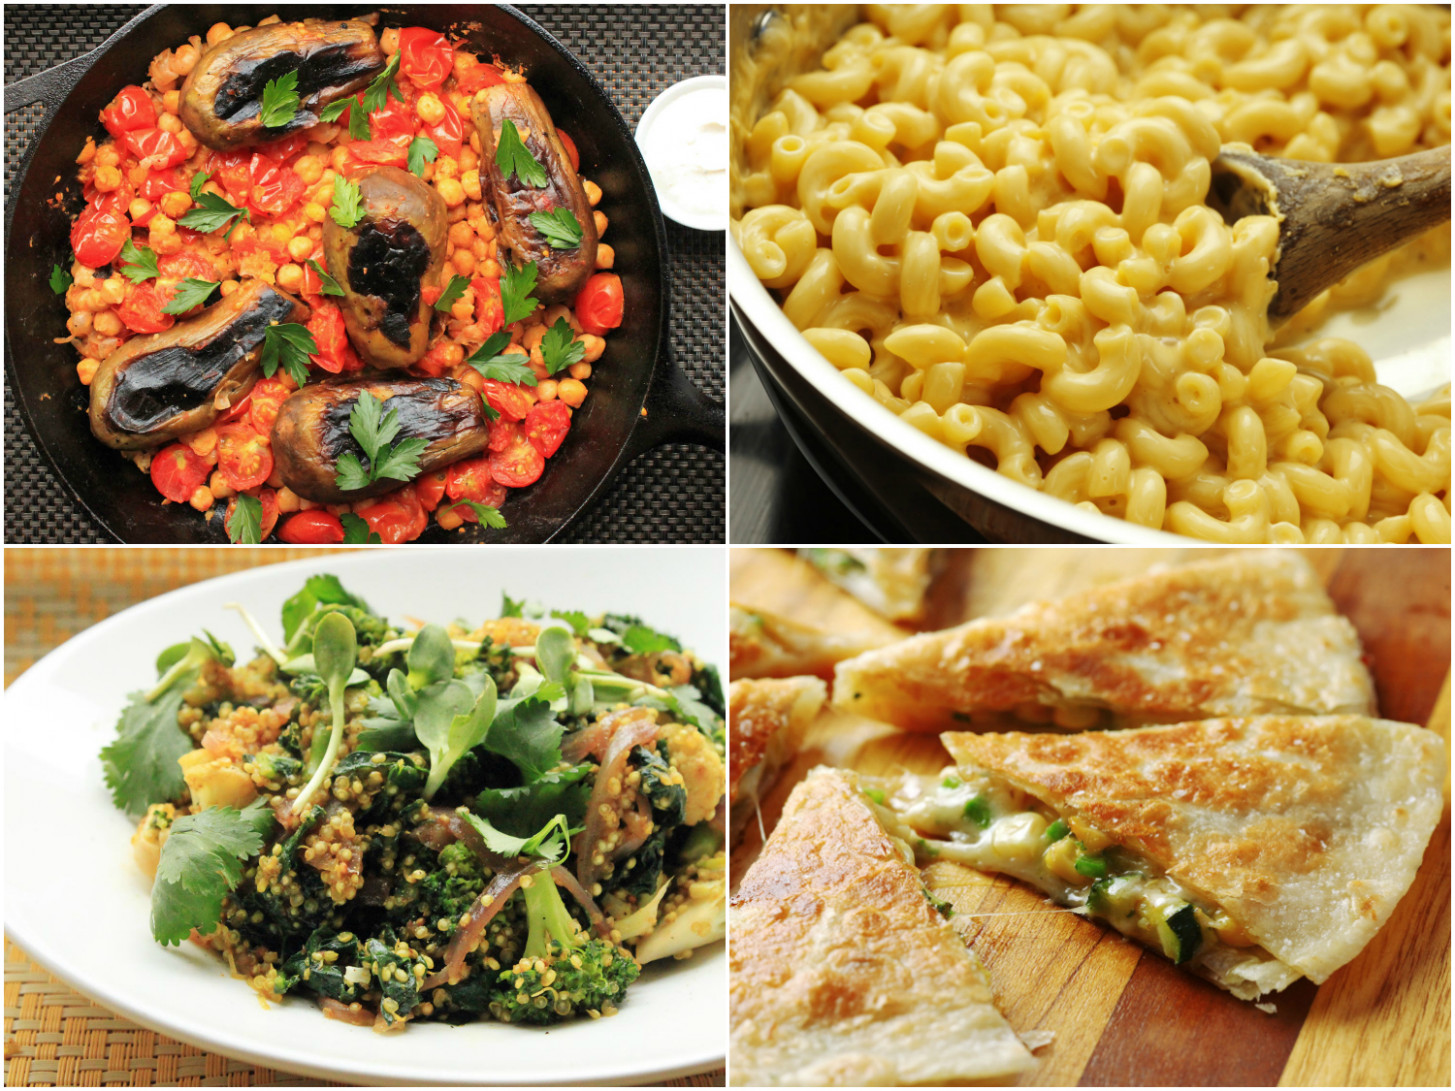 15 Easy One-Pot Vegetarian Dinners | Serious Eats - recipes for dinner vegetarian